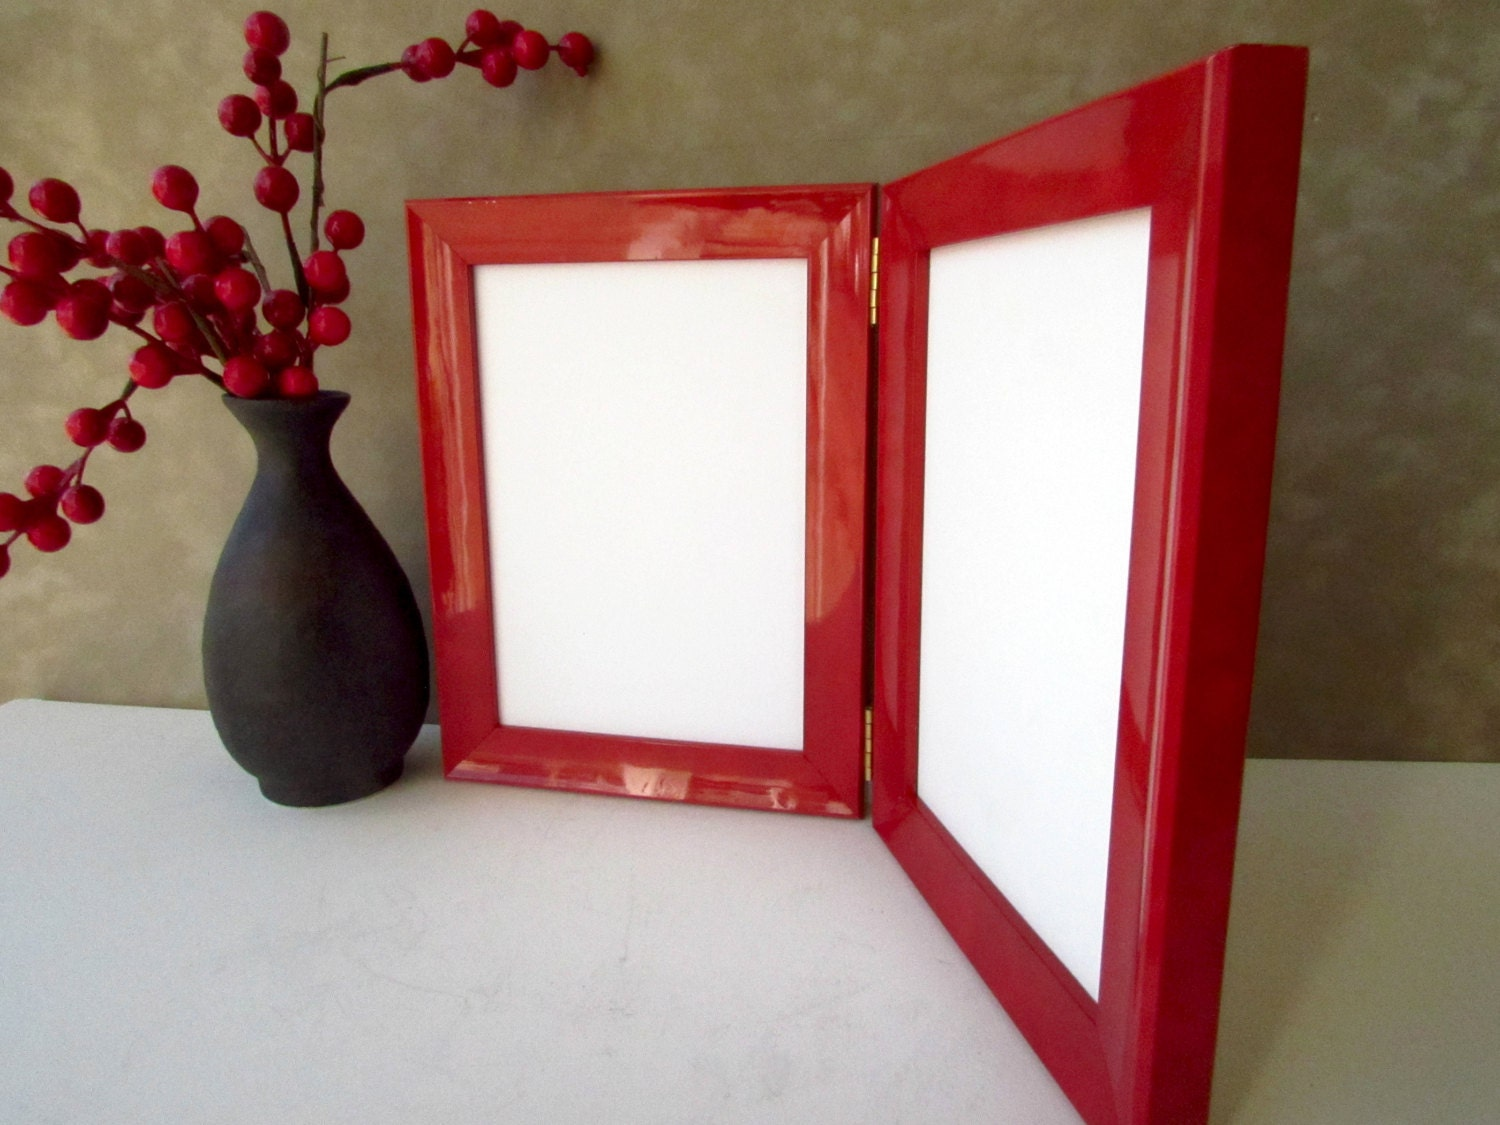 double hinged frame 5x 7 elegant picture frame red lacquer frame double photo frames 5x7 love frame red photo framegift forher